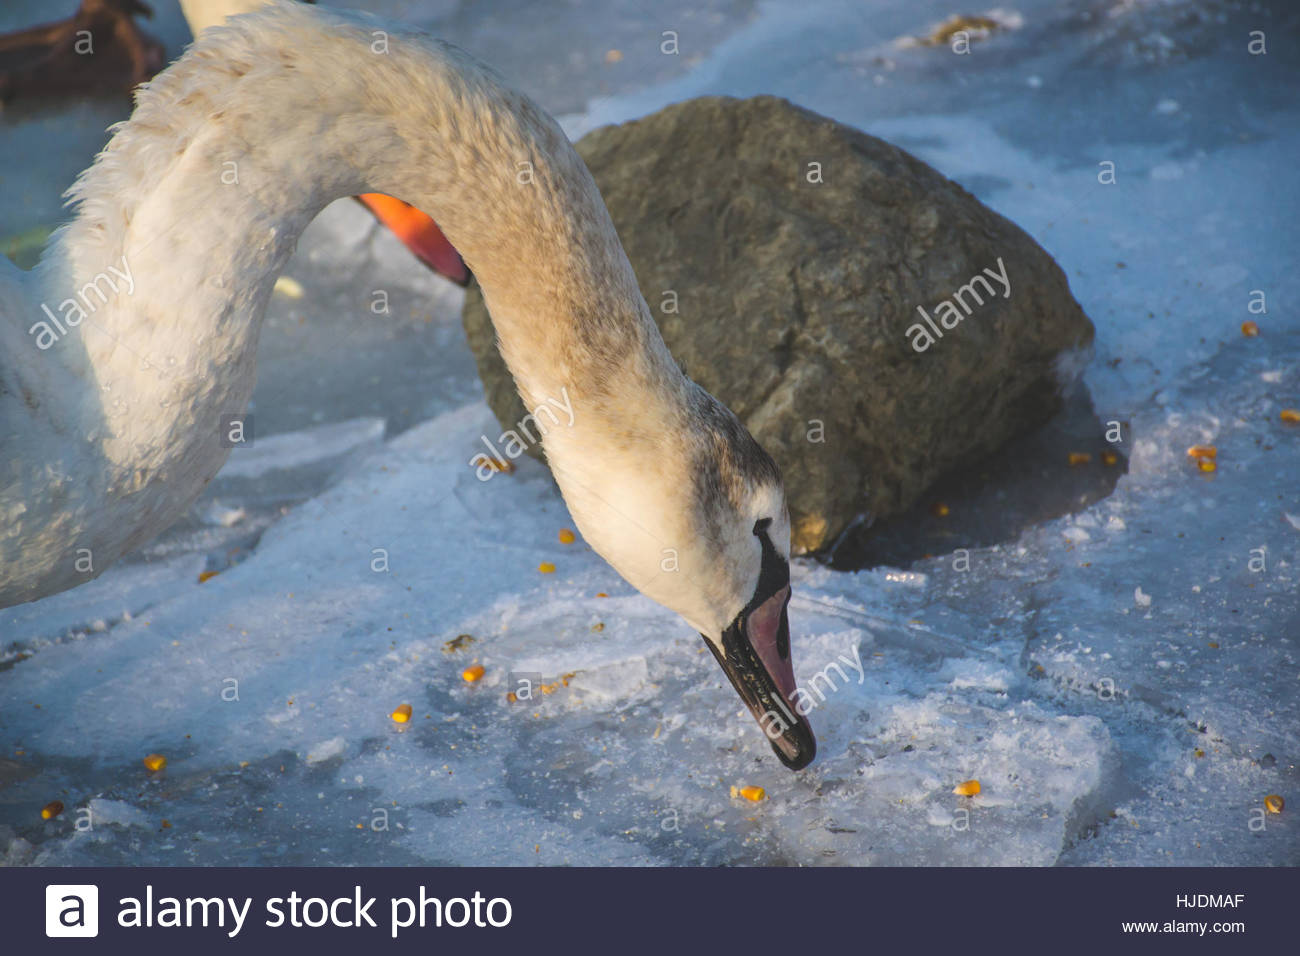 Swans and winter.  Snow and ice around the swans. Swans are birds of the family Anatidae within the genus Cygnus. Stock Photo